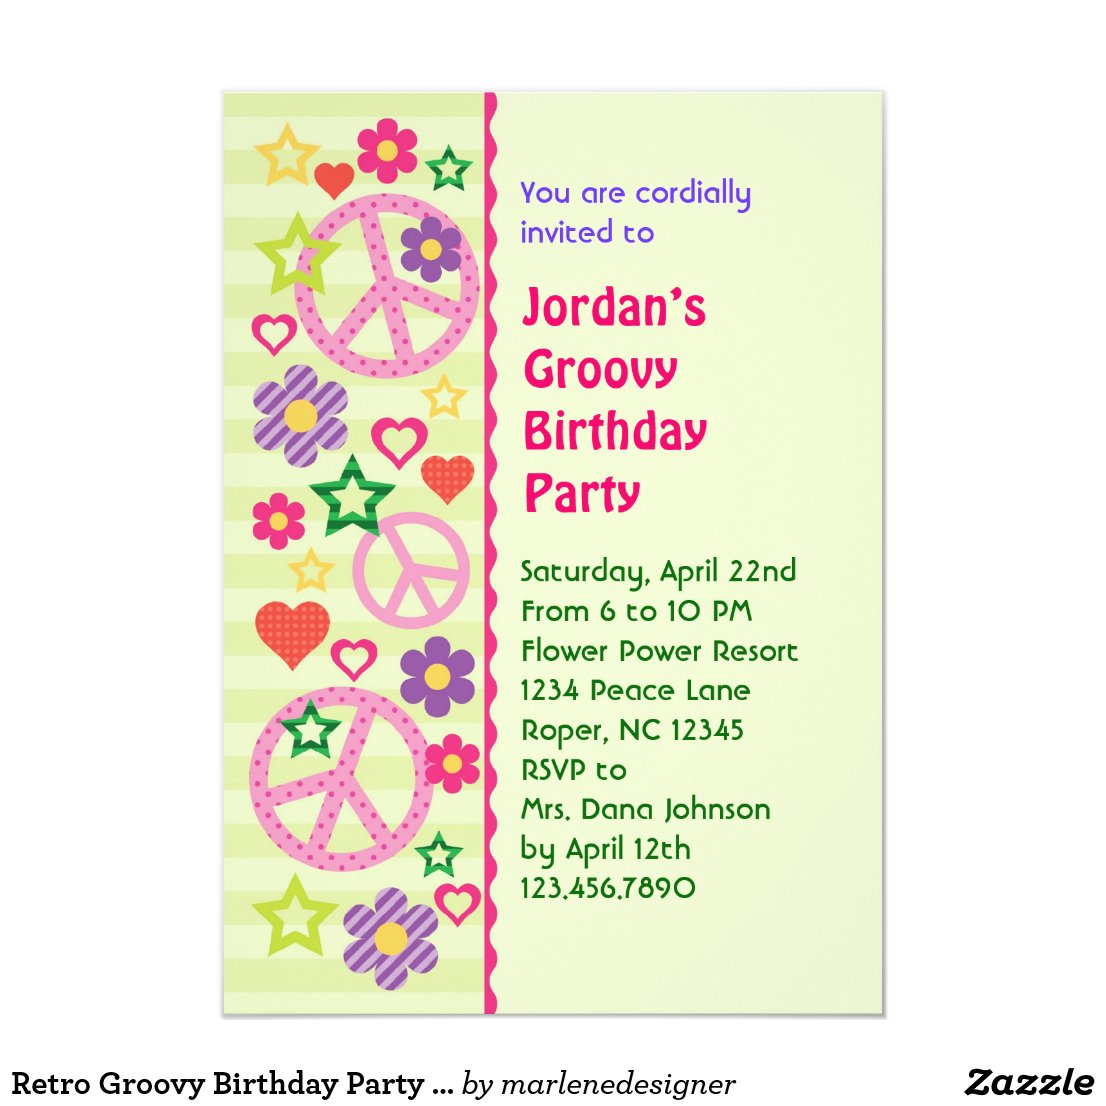 Retro Groovy Birthday Party Invitation